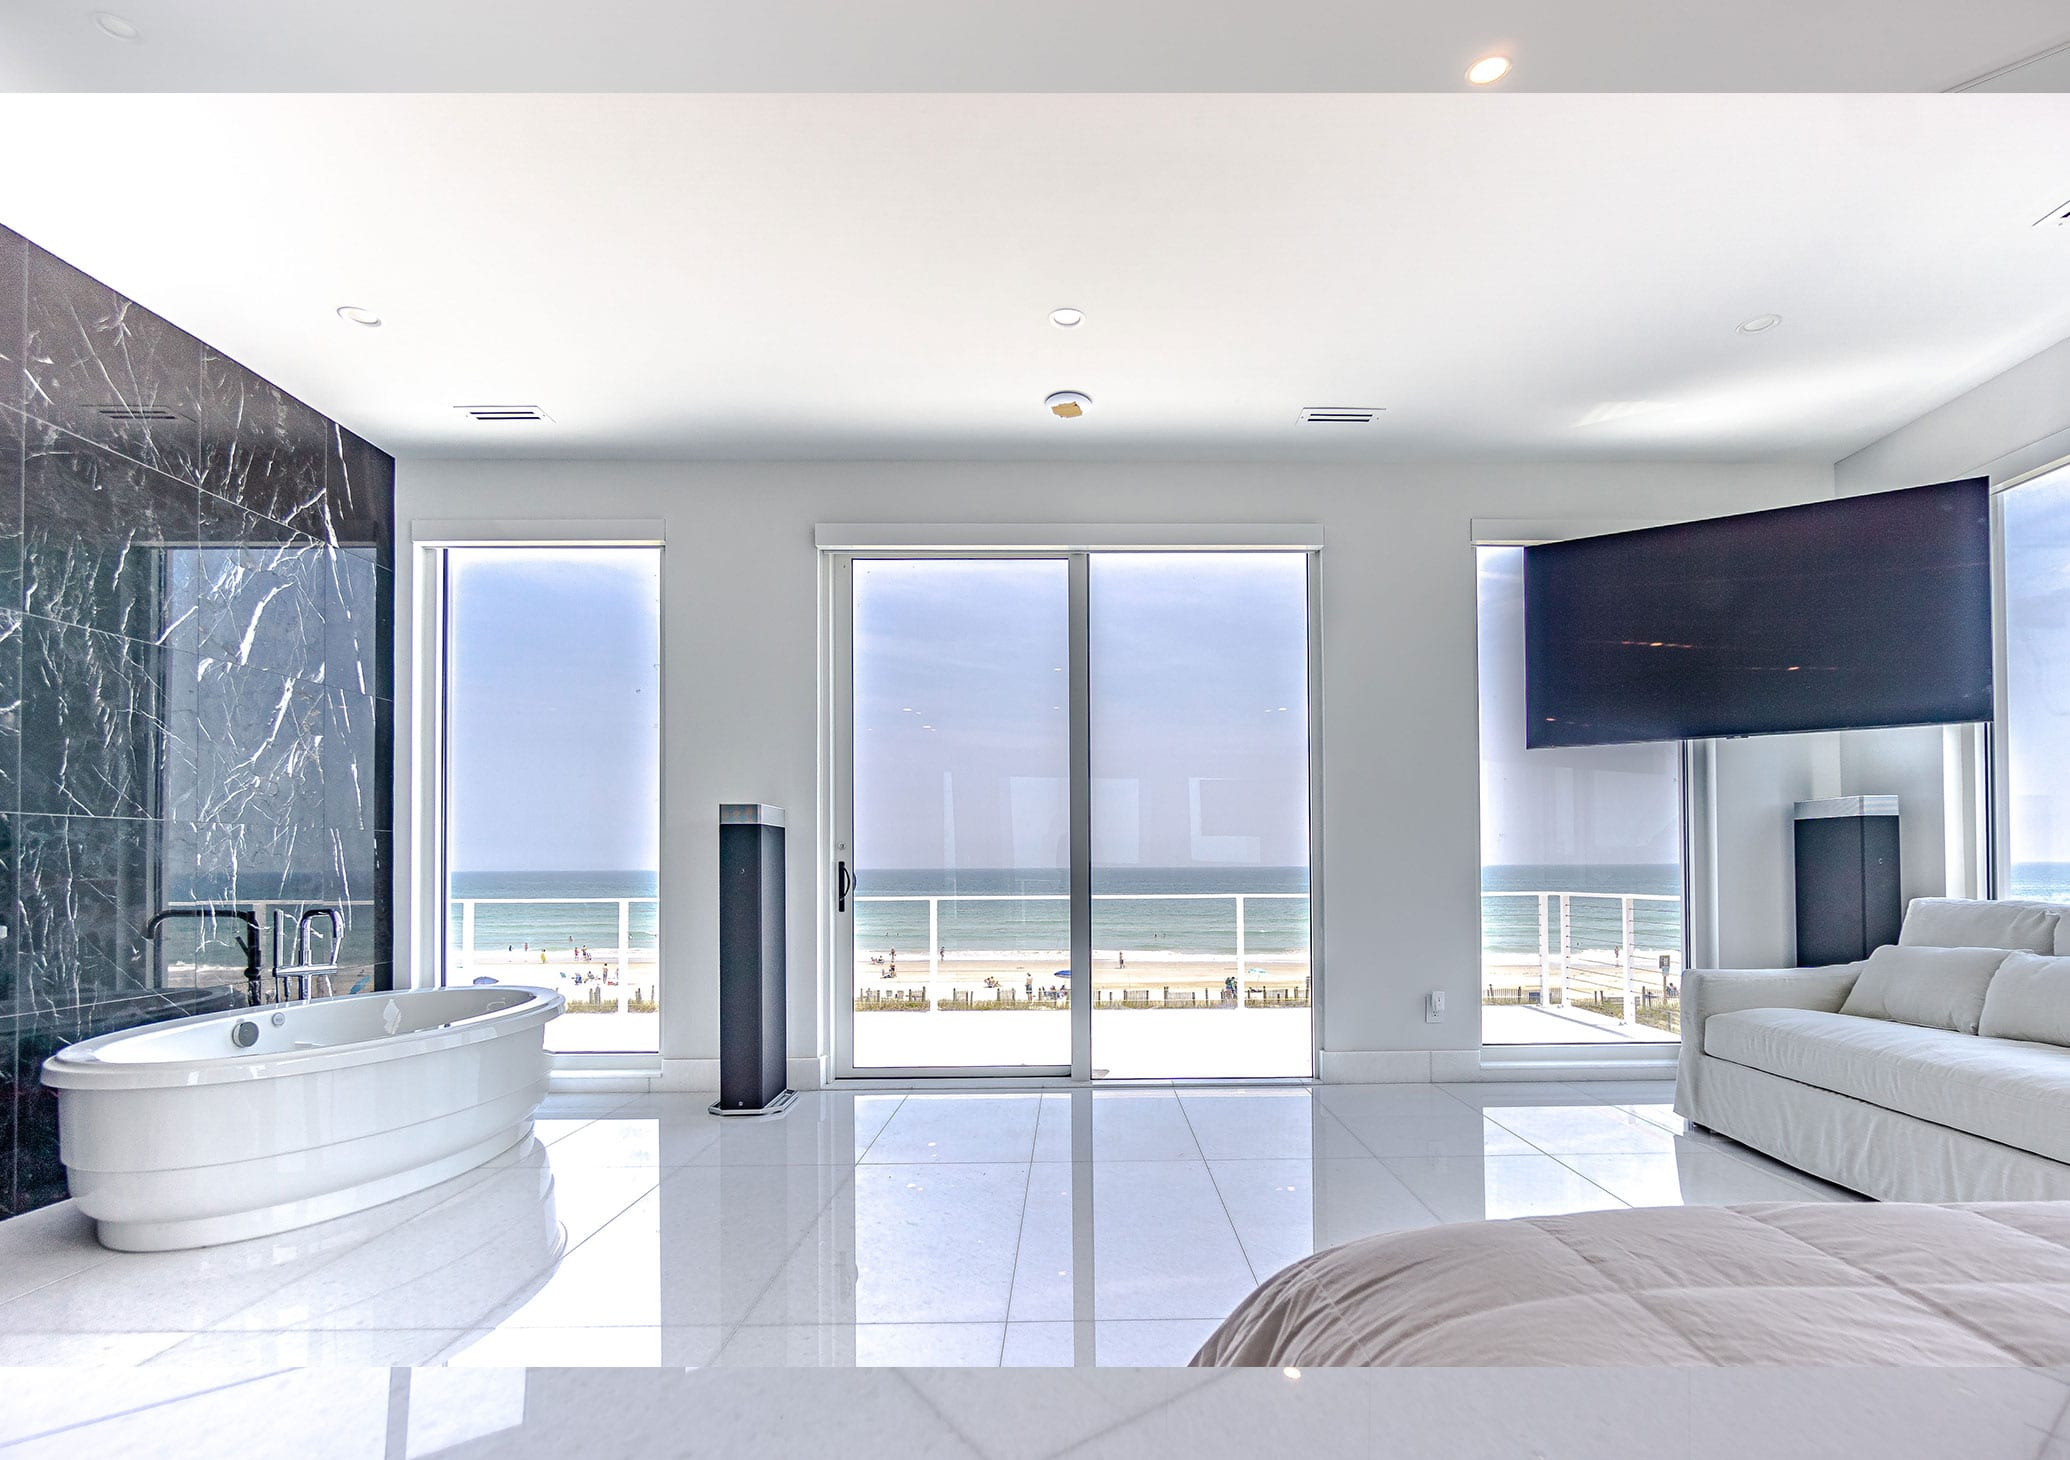 Stoneline-Group-Diamond-White-Marble-Florida-Marble-Collection-Marble-Tile-Hotel-room-deluxe-room-Design-1